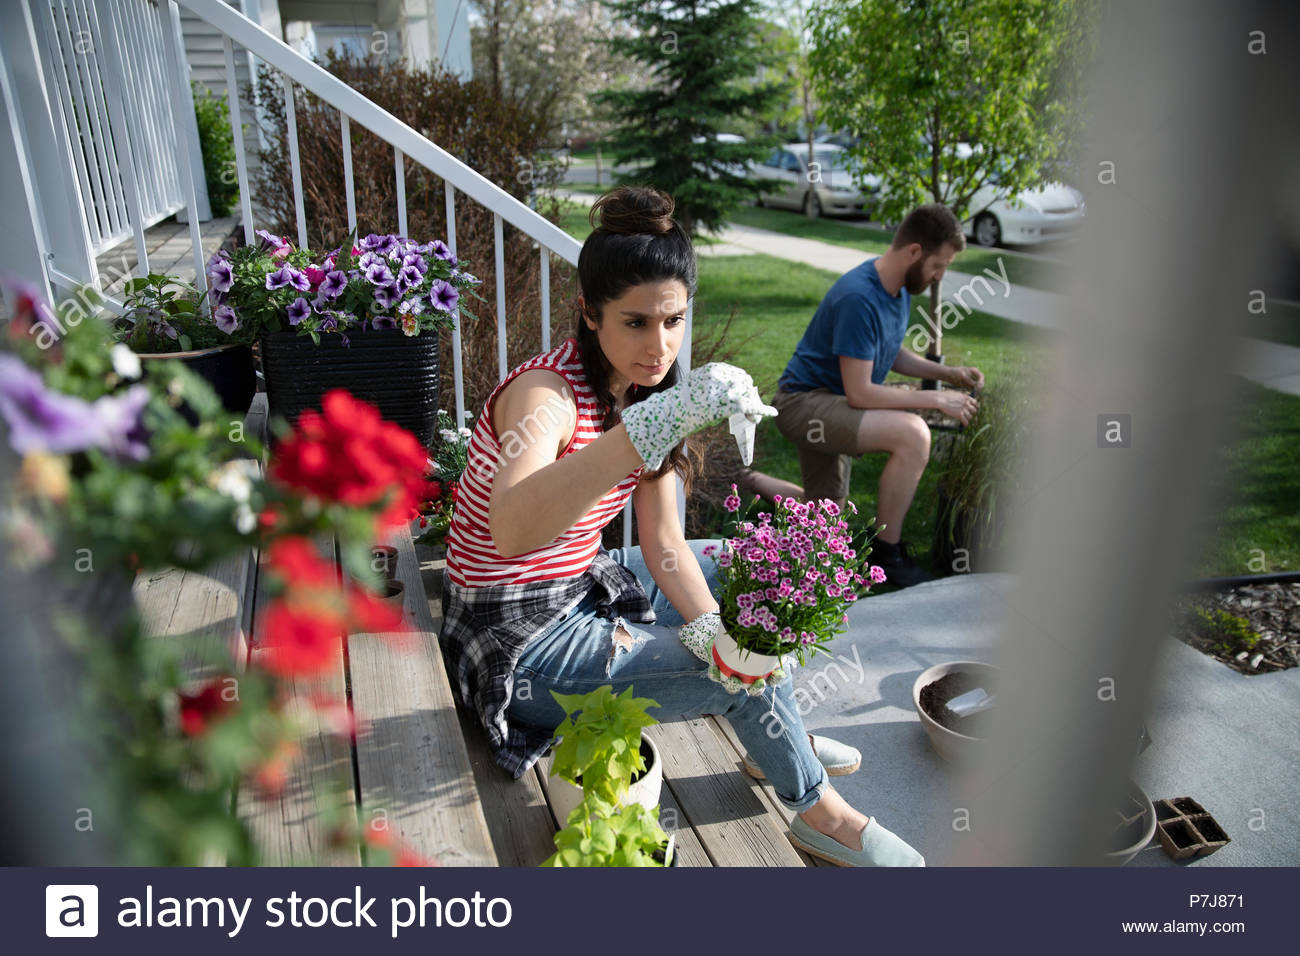 Couple gardening, planting flowers on sunny front stoop - Stock Image